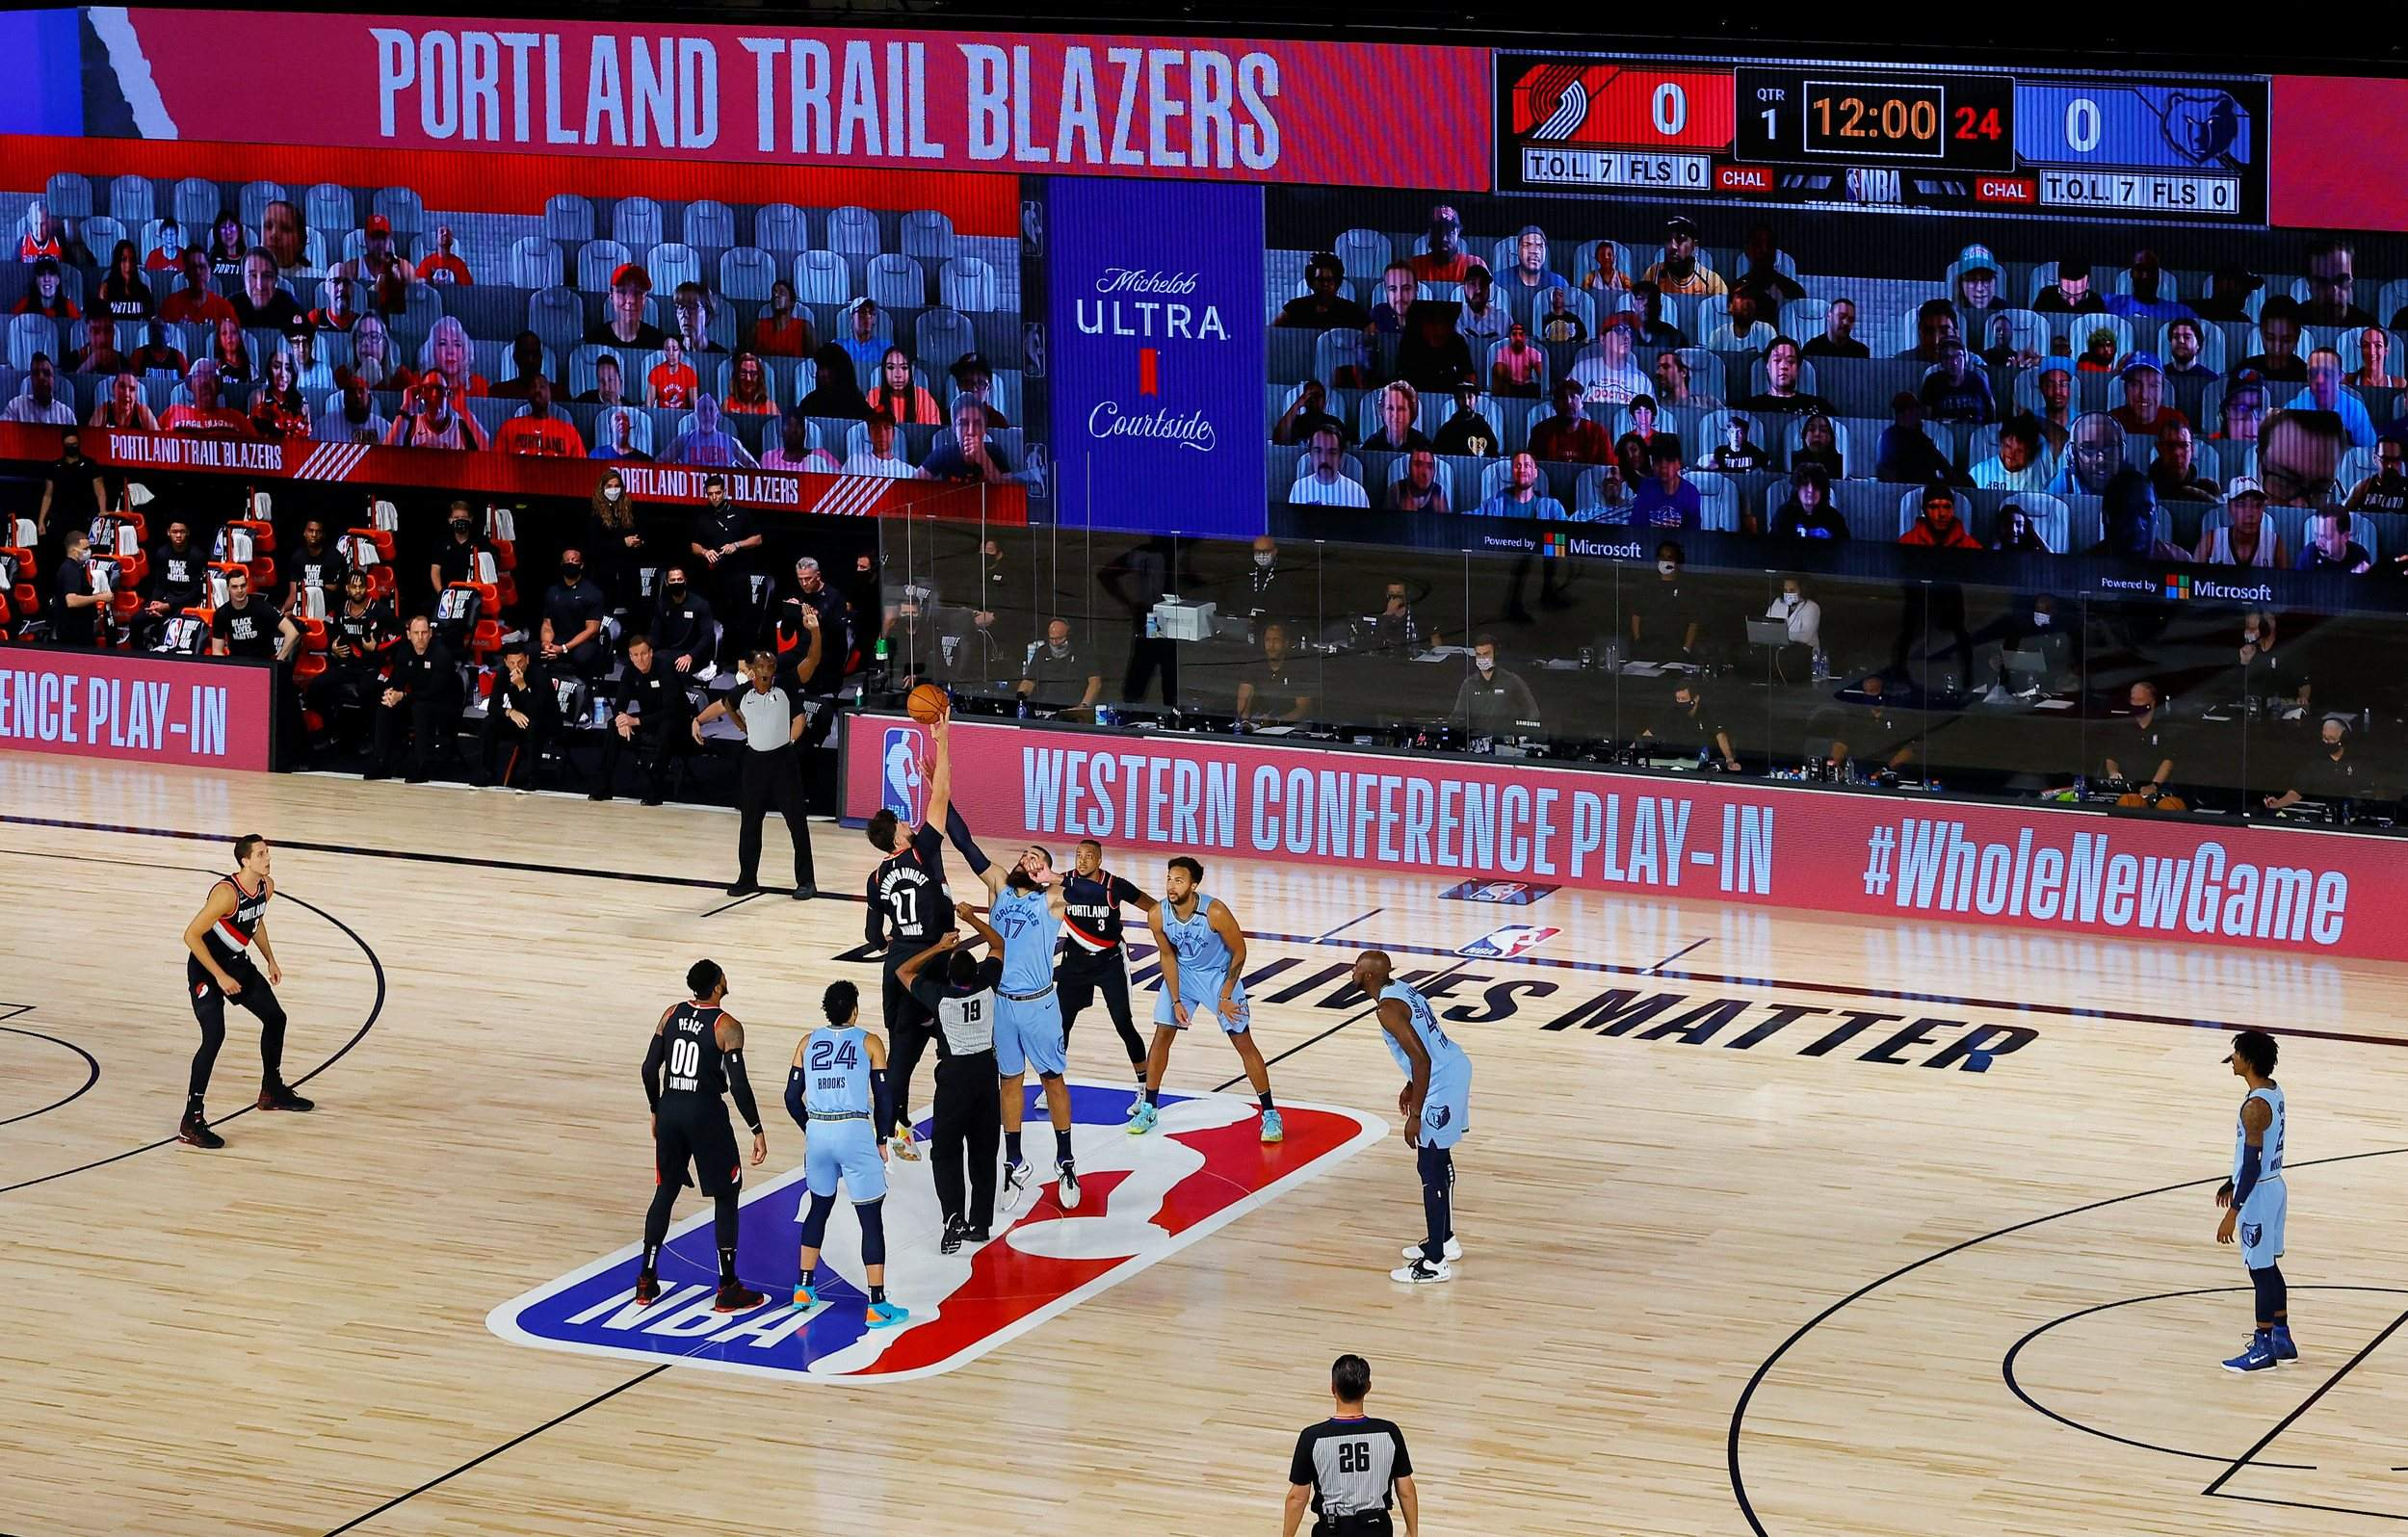 National Basketball Association  2020-21 season: Schedule in 2 halves, Play-In Tournament confirmed